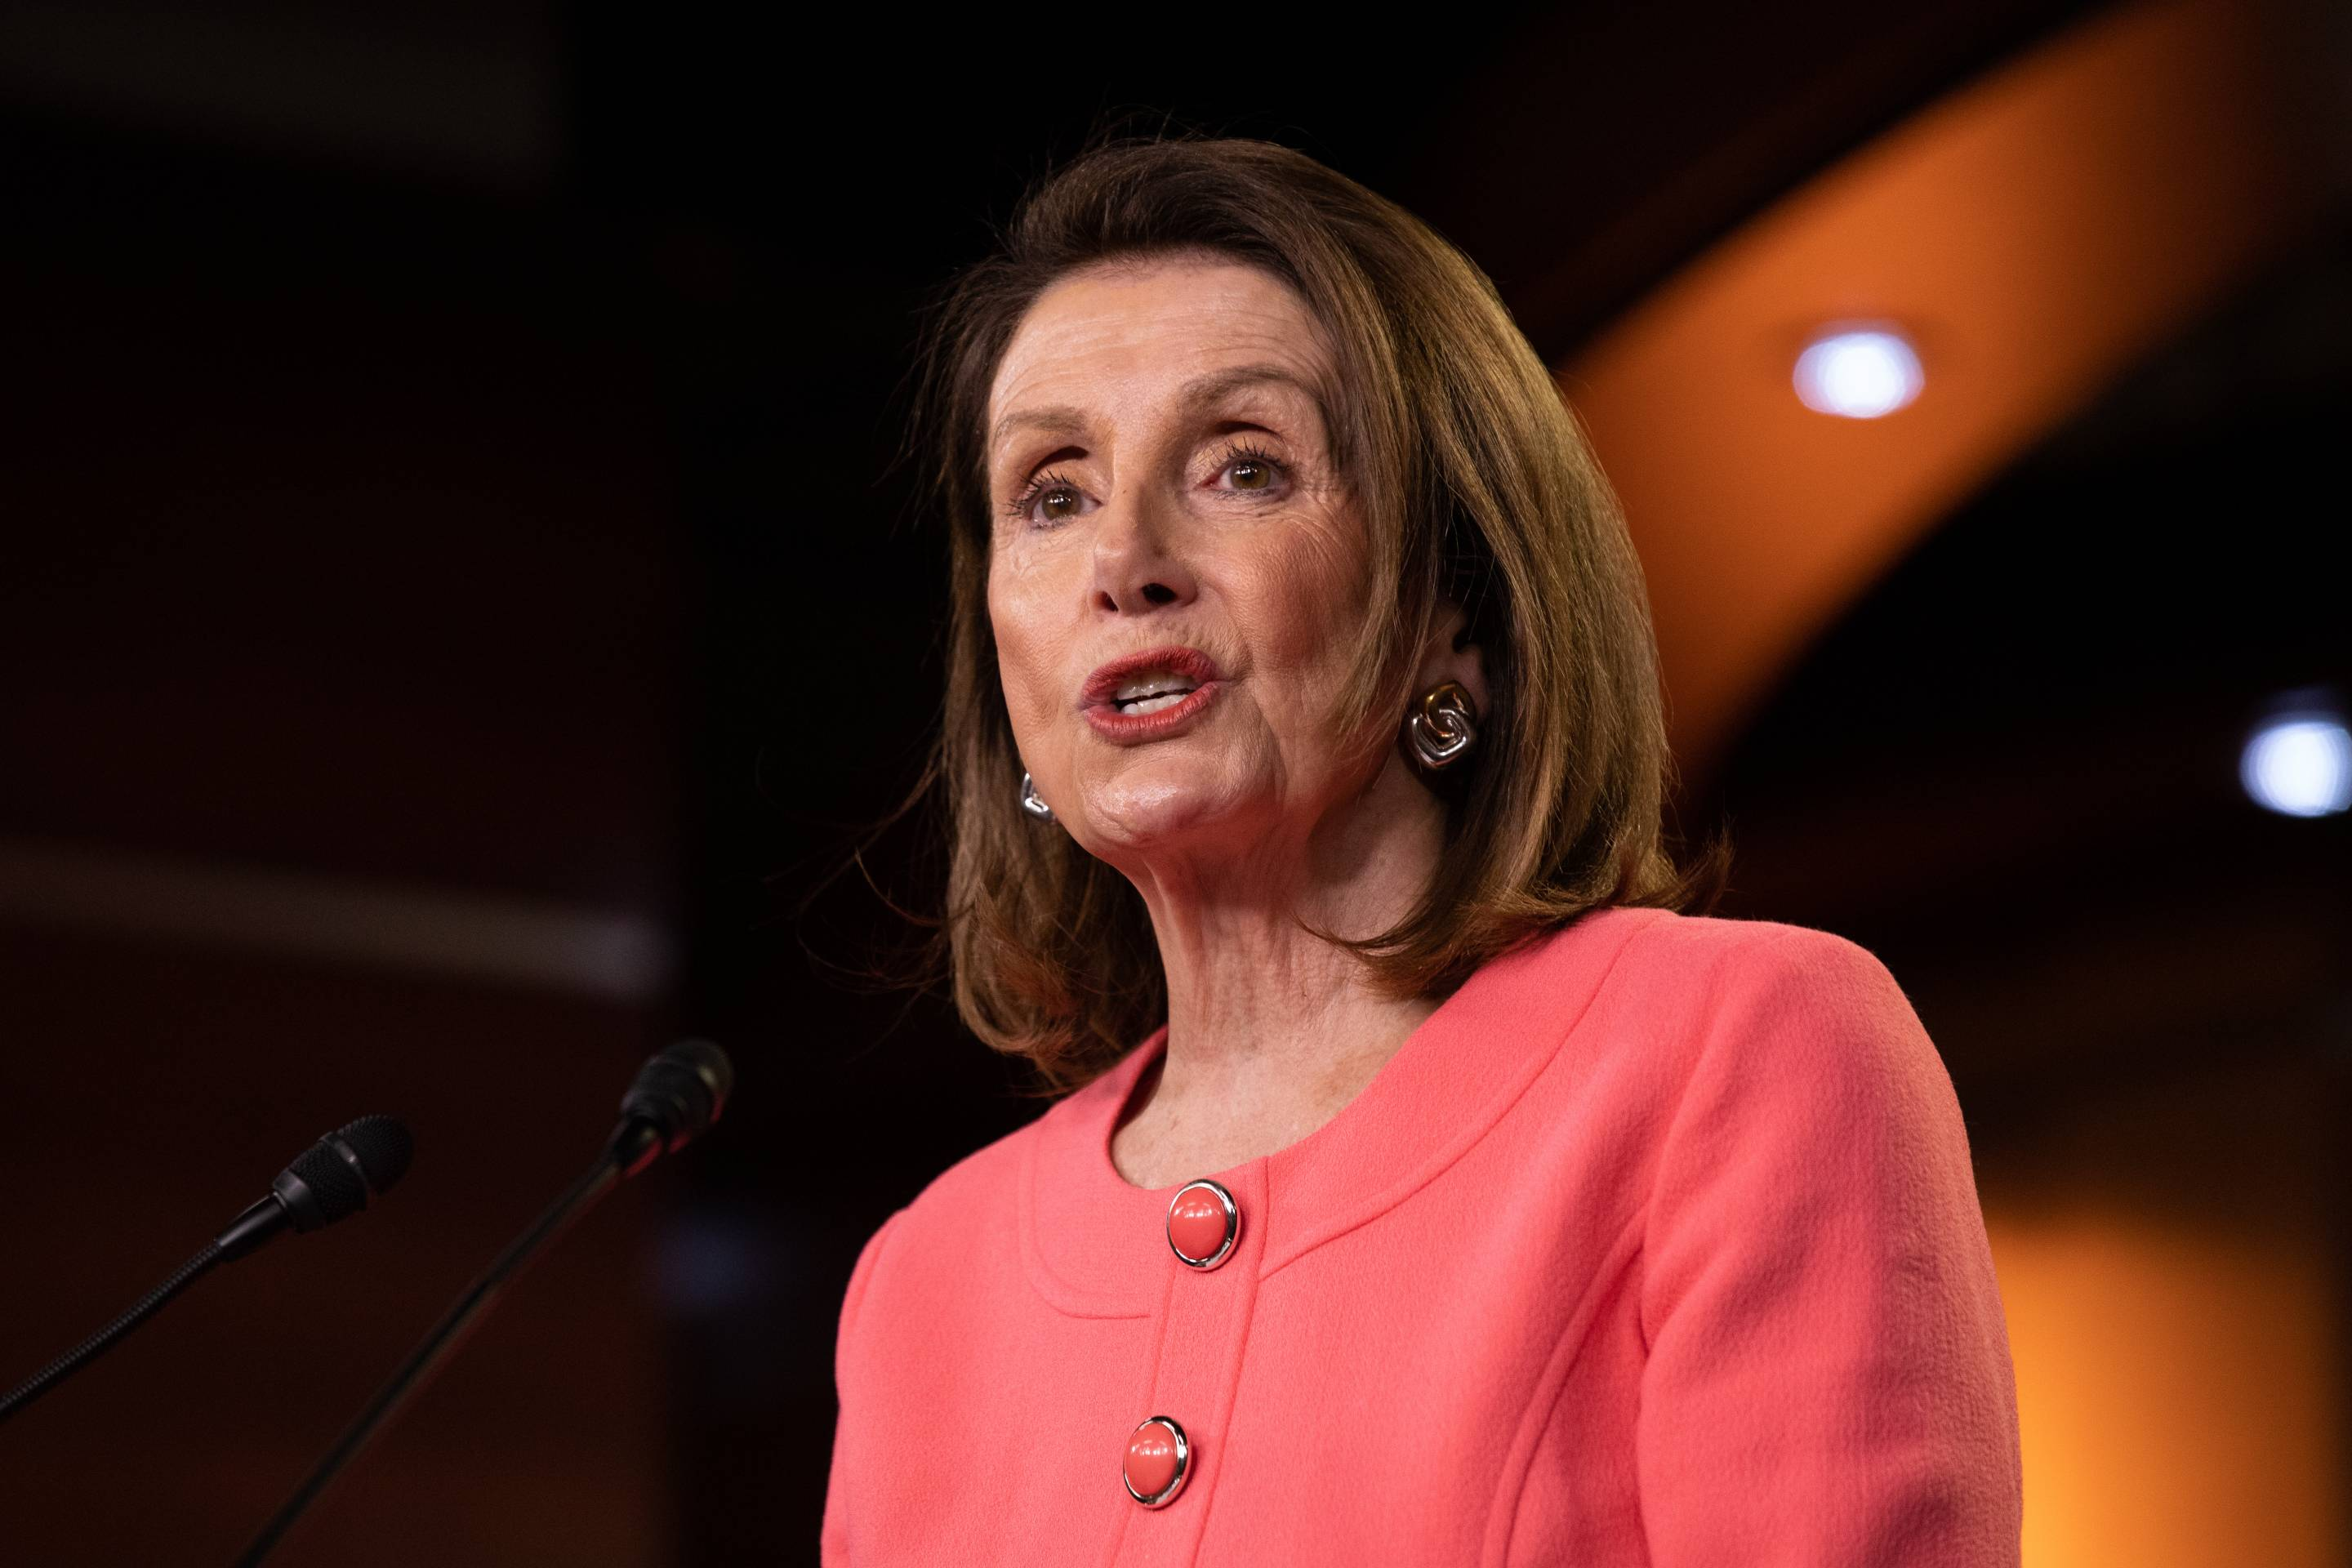 House Speaker Nancy Pelosi Holds Weekly News Conference At U.S. Capitol